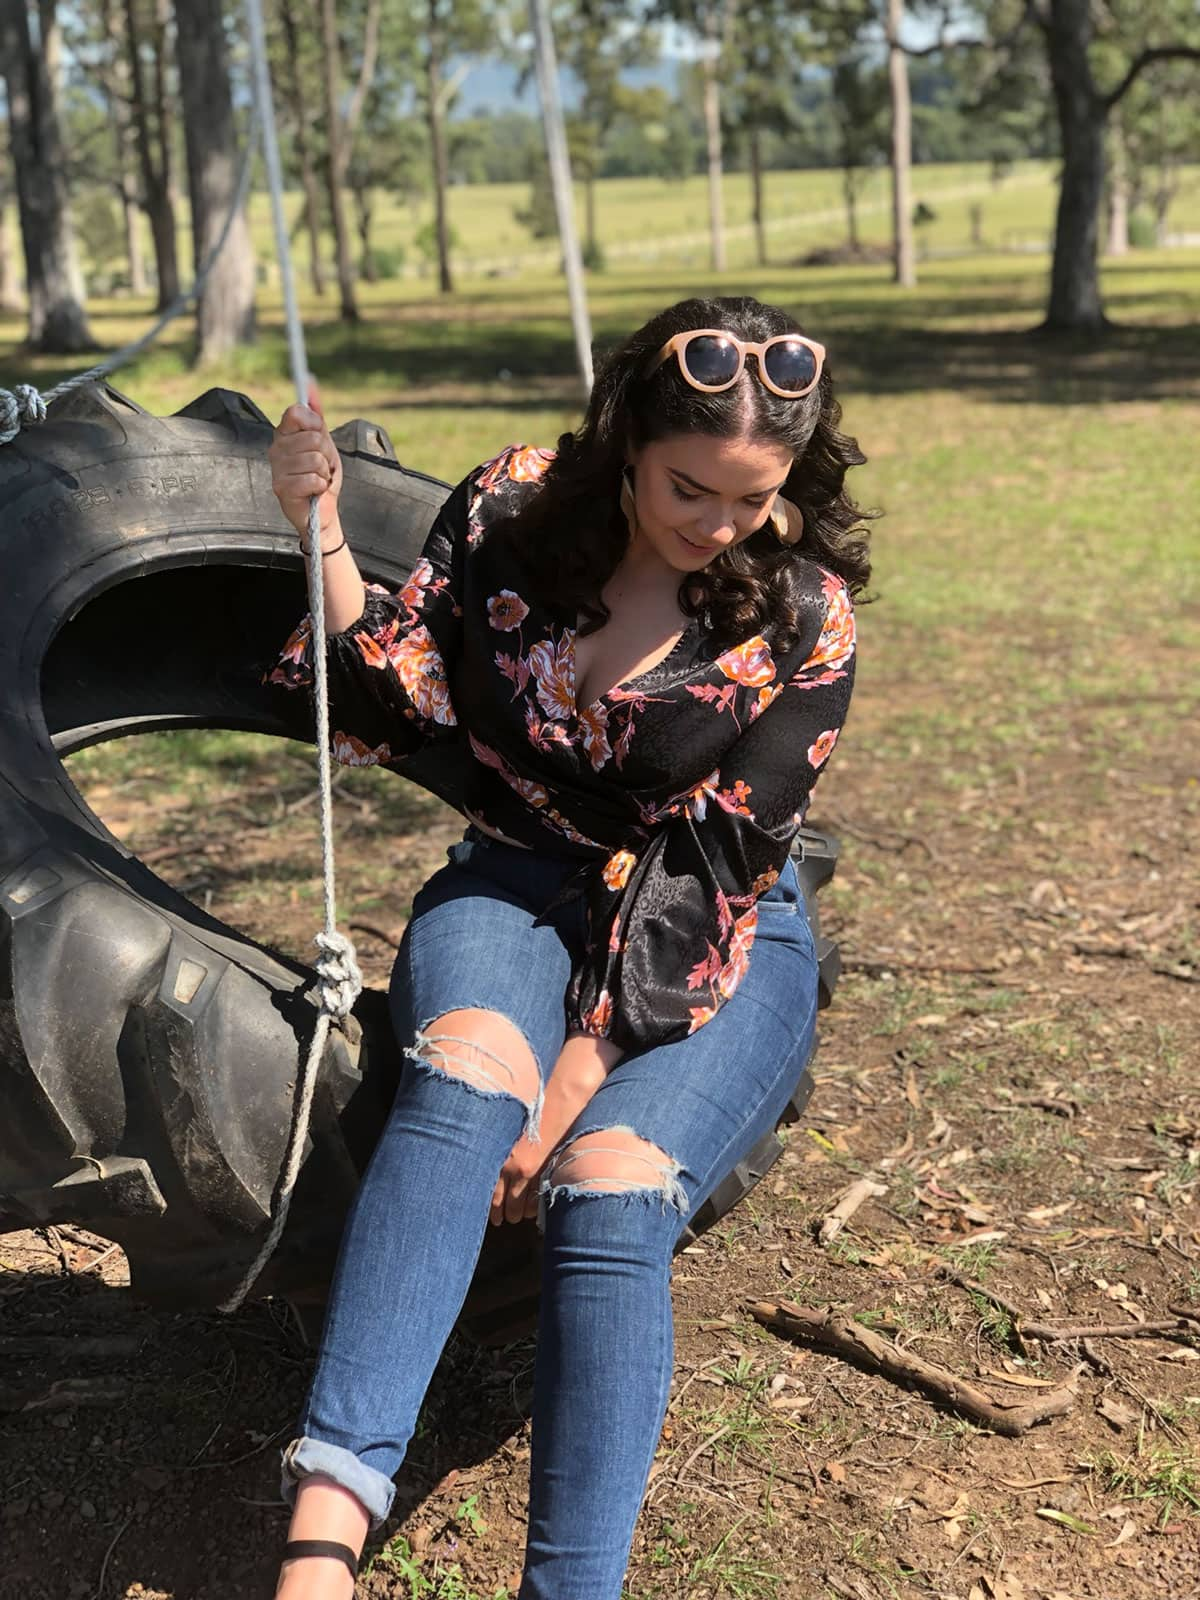 A woman with curly dark hair, wearing blue ripped jeans and a black floral blouse sitting on a tyre swing